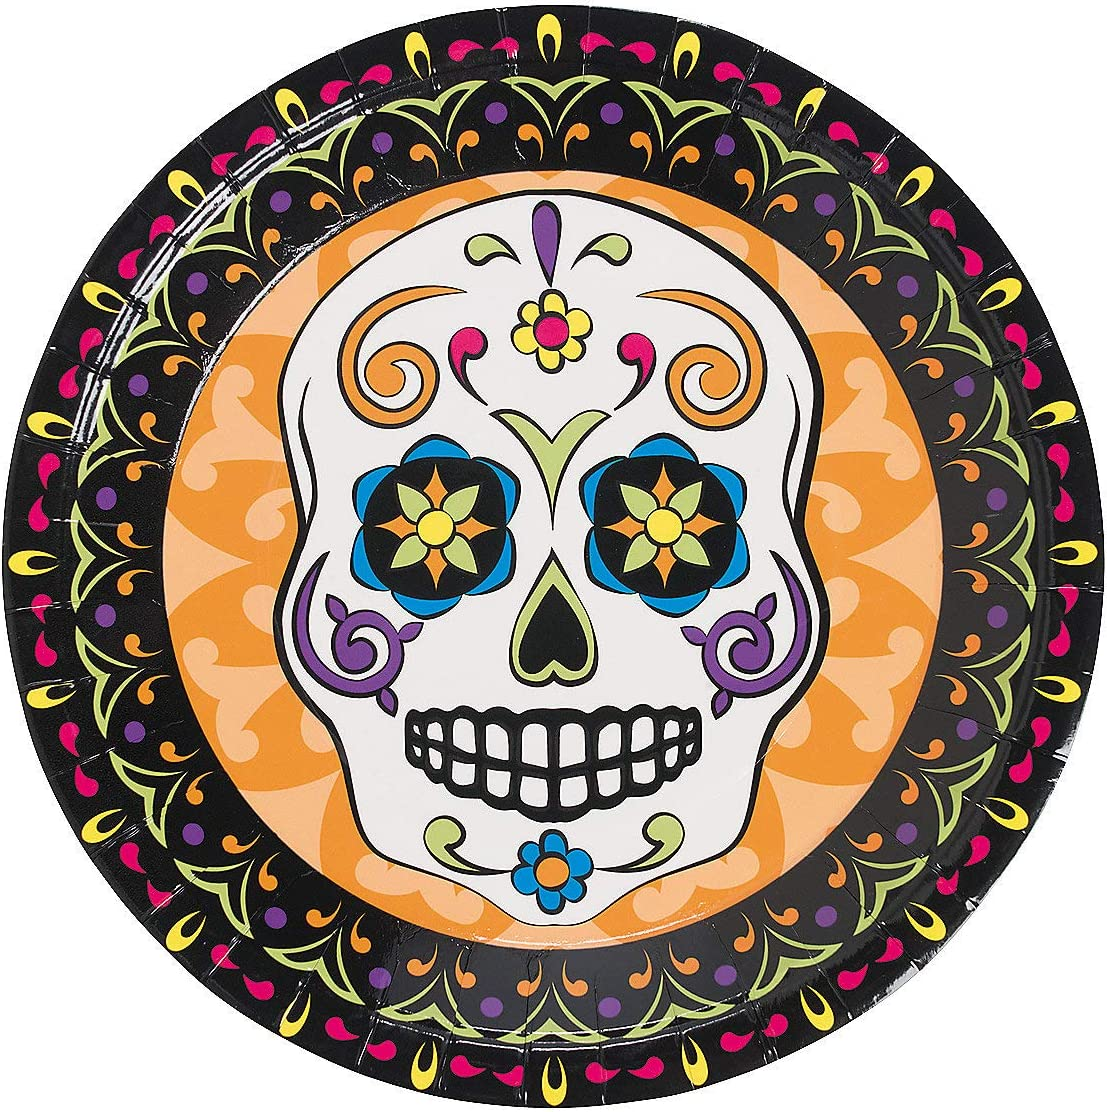 and Pin Cups Napkins Mega Dia De Los Muertos Day Of The Dead Halloween Party Pack for 18 With Plates Banner Tablecover Table Decoration Swirls